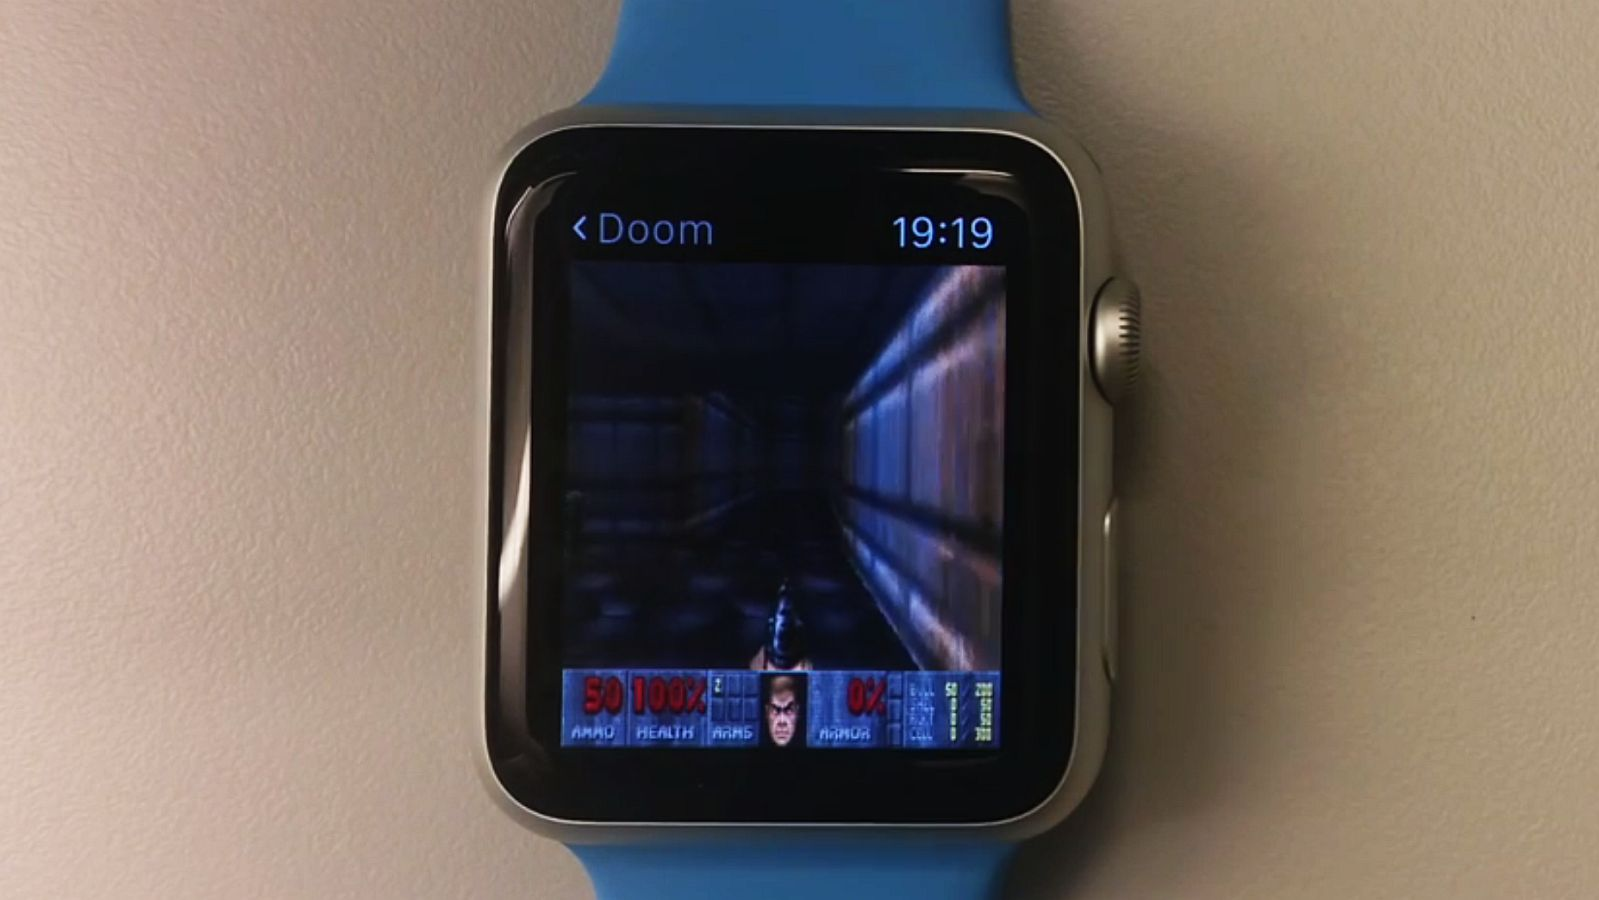 doom apple watch - Insolite : le jeu Doom sur l'Apple Watch & l'Apple TV 2015